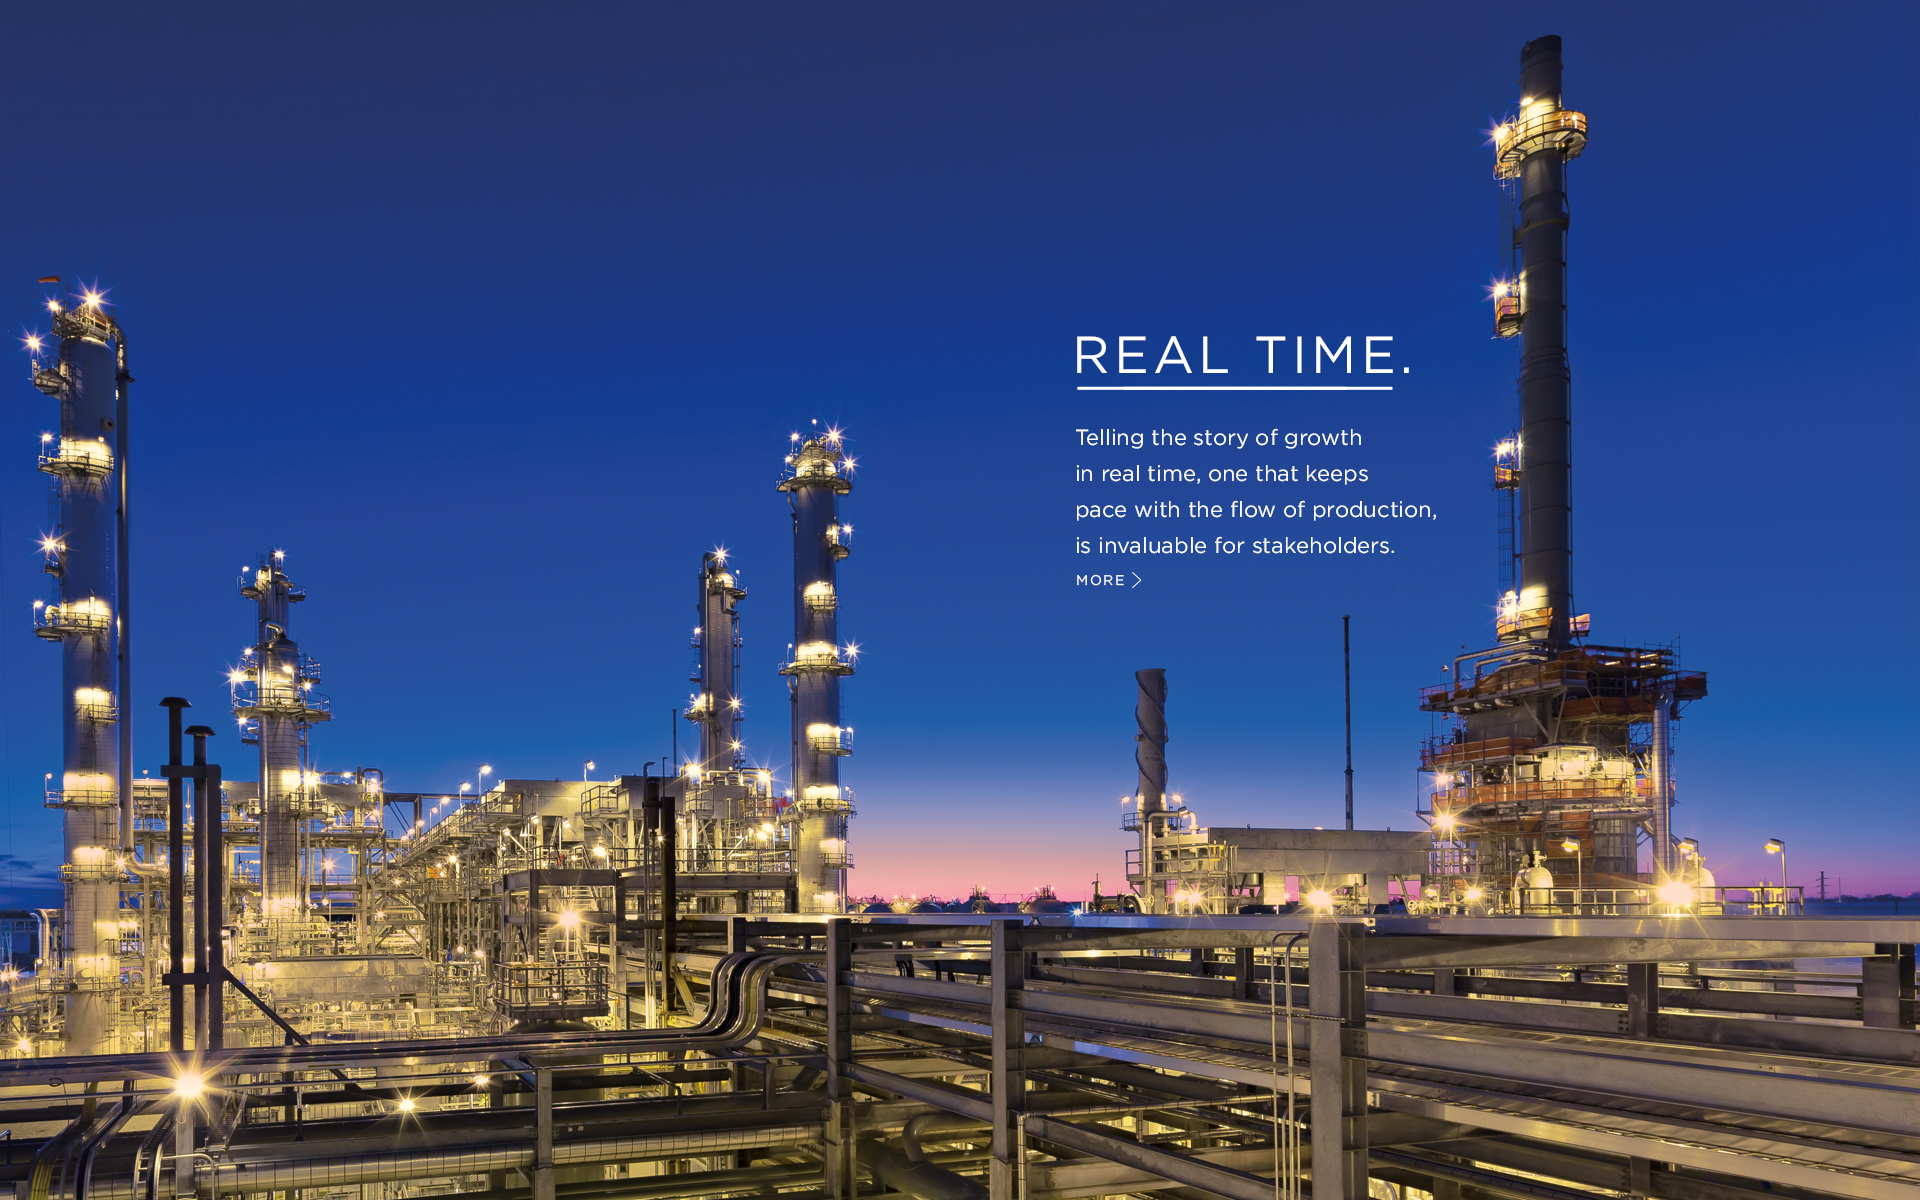 Phillips 66 2015 Annual Report